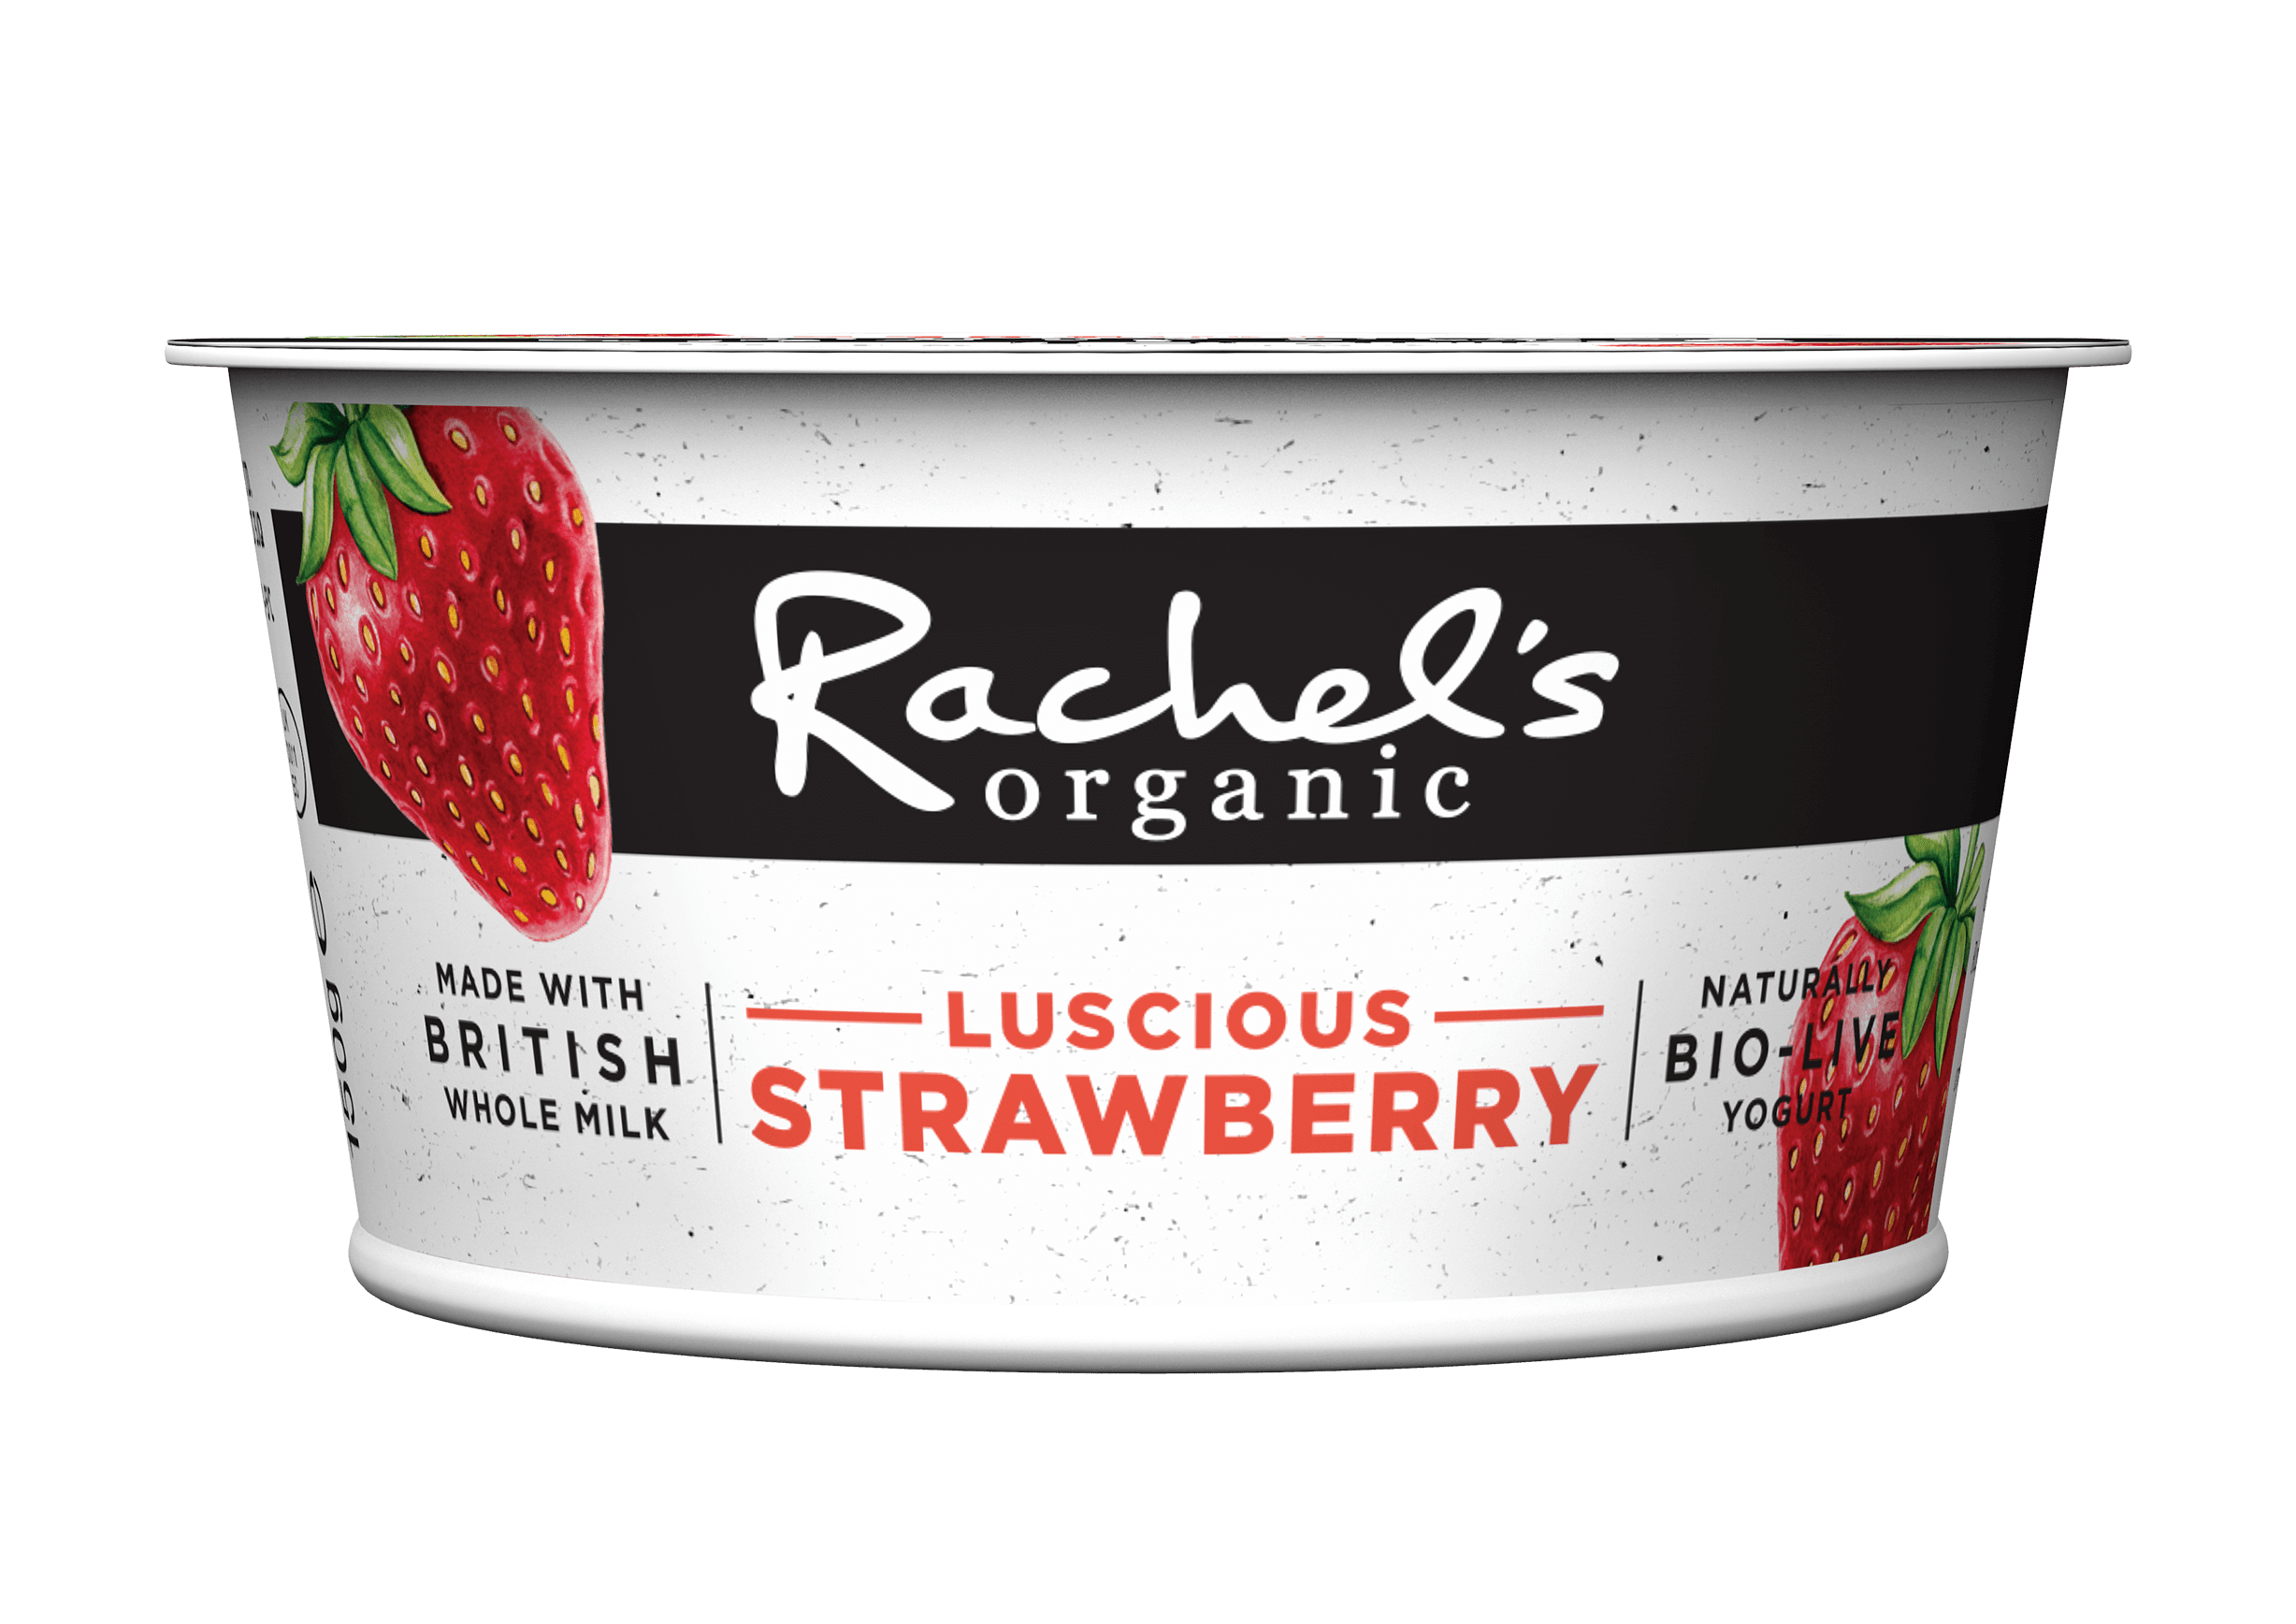 https://www.rachelsorganic.co.uk/wp-content/uploads/2019/06/5021638111451-3D-RACHELS-150G-POT-LUSCIOUS-STRAWBERRY.png